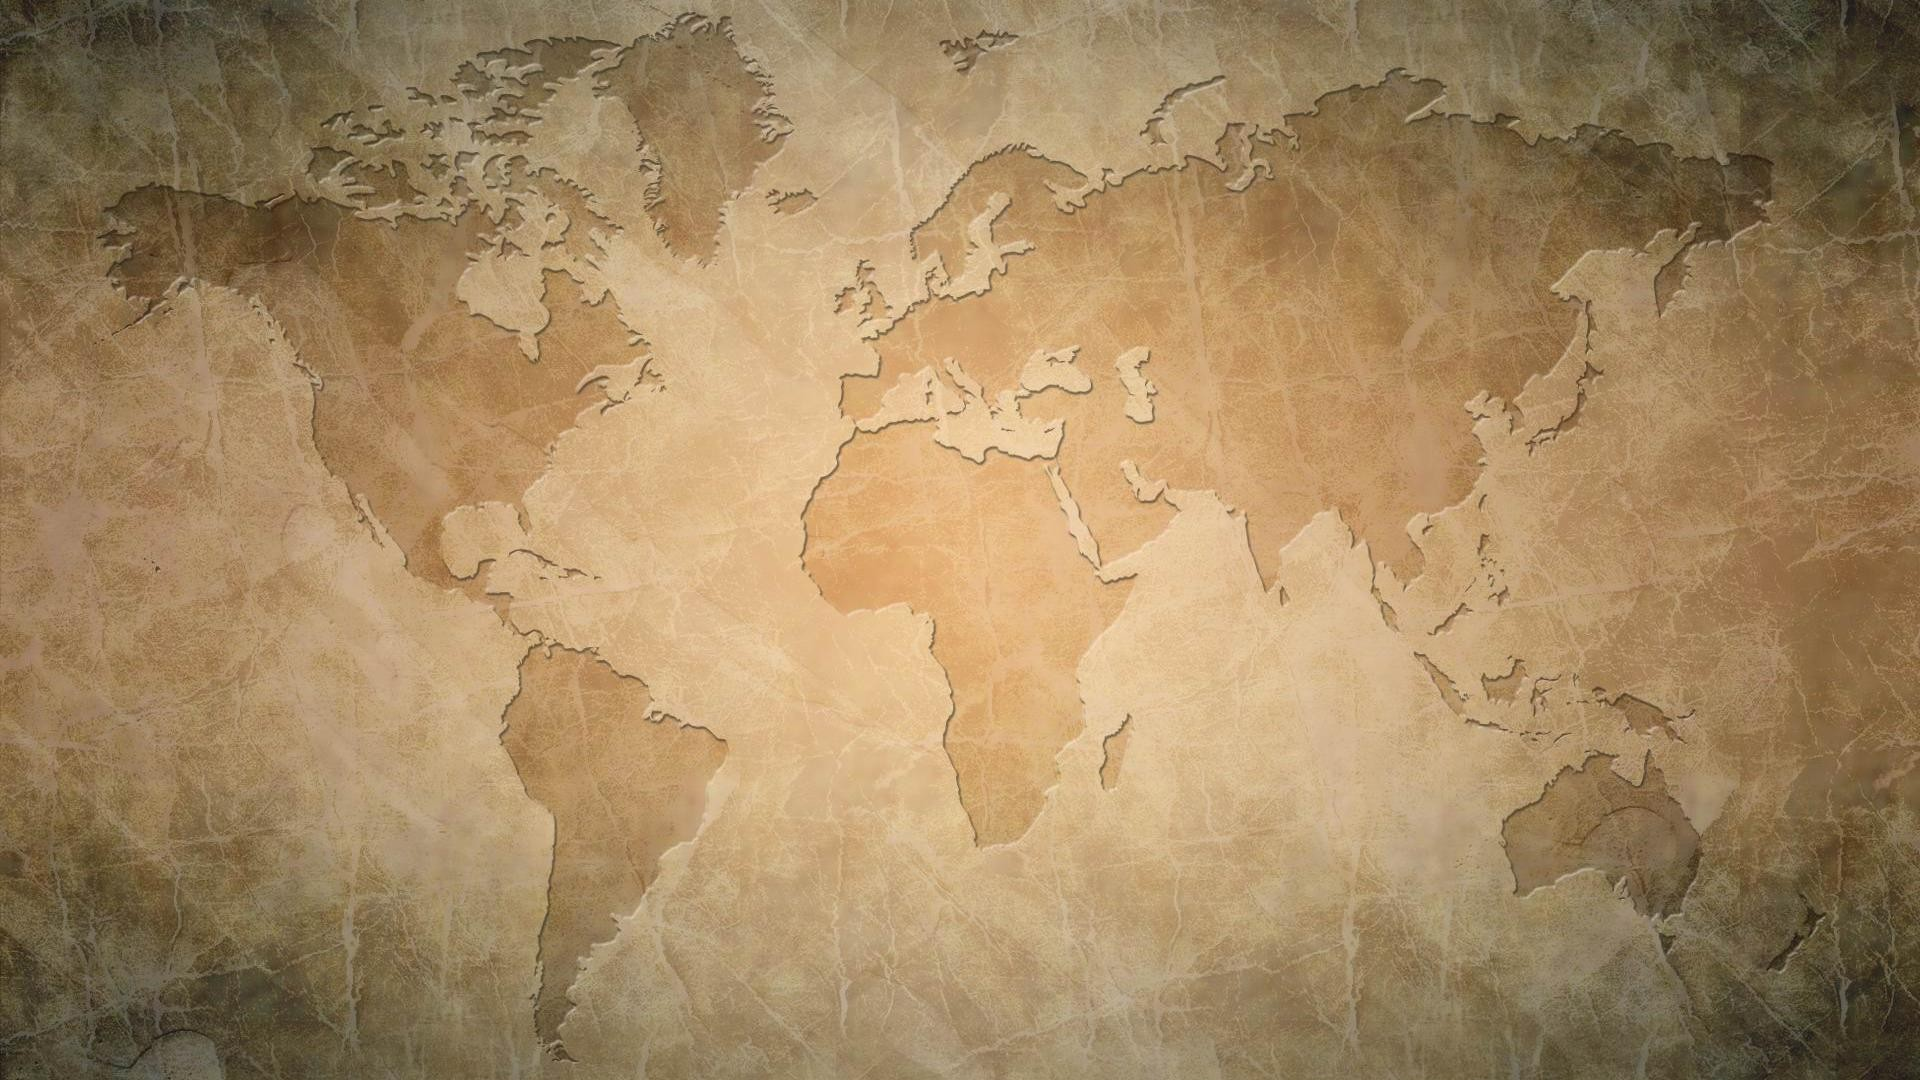 World map desktop wallpaper hd 70 images 1920x1080 circle packing green matrix code world map hd desktop wallpaper gumiabroncs Image collections